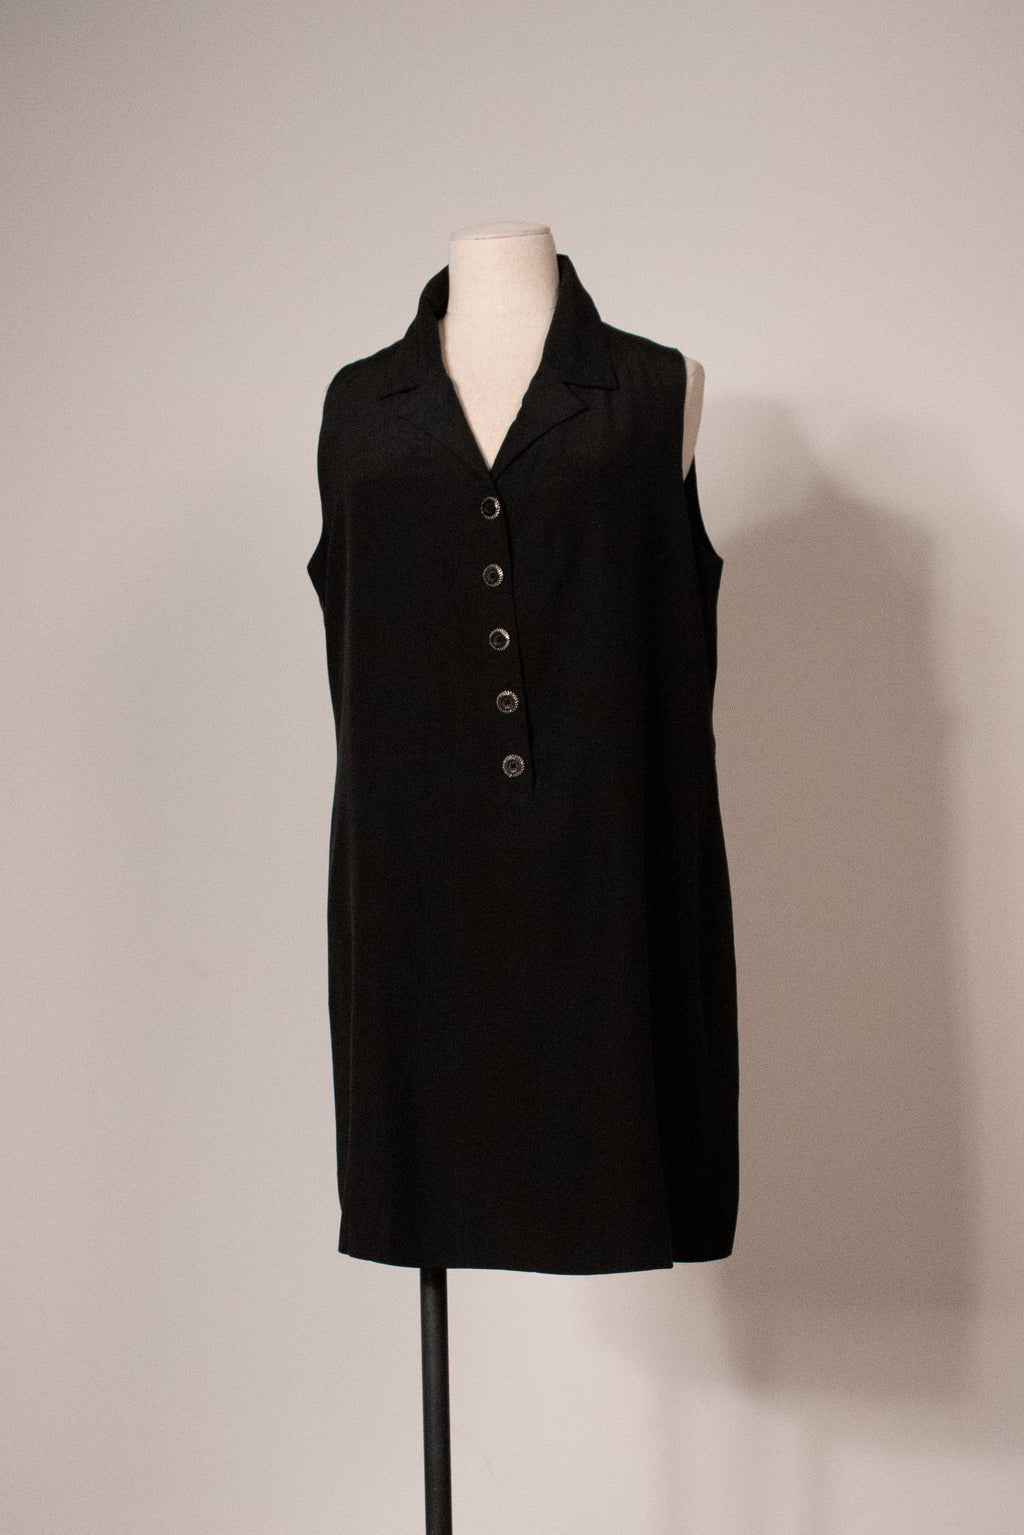 Karl Lagerfeld for Bergdorf Goodman black silk trapeze dress